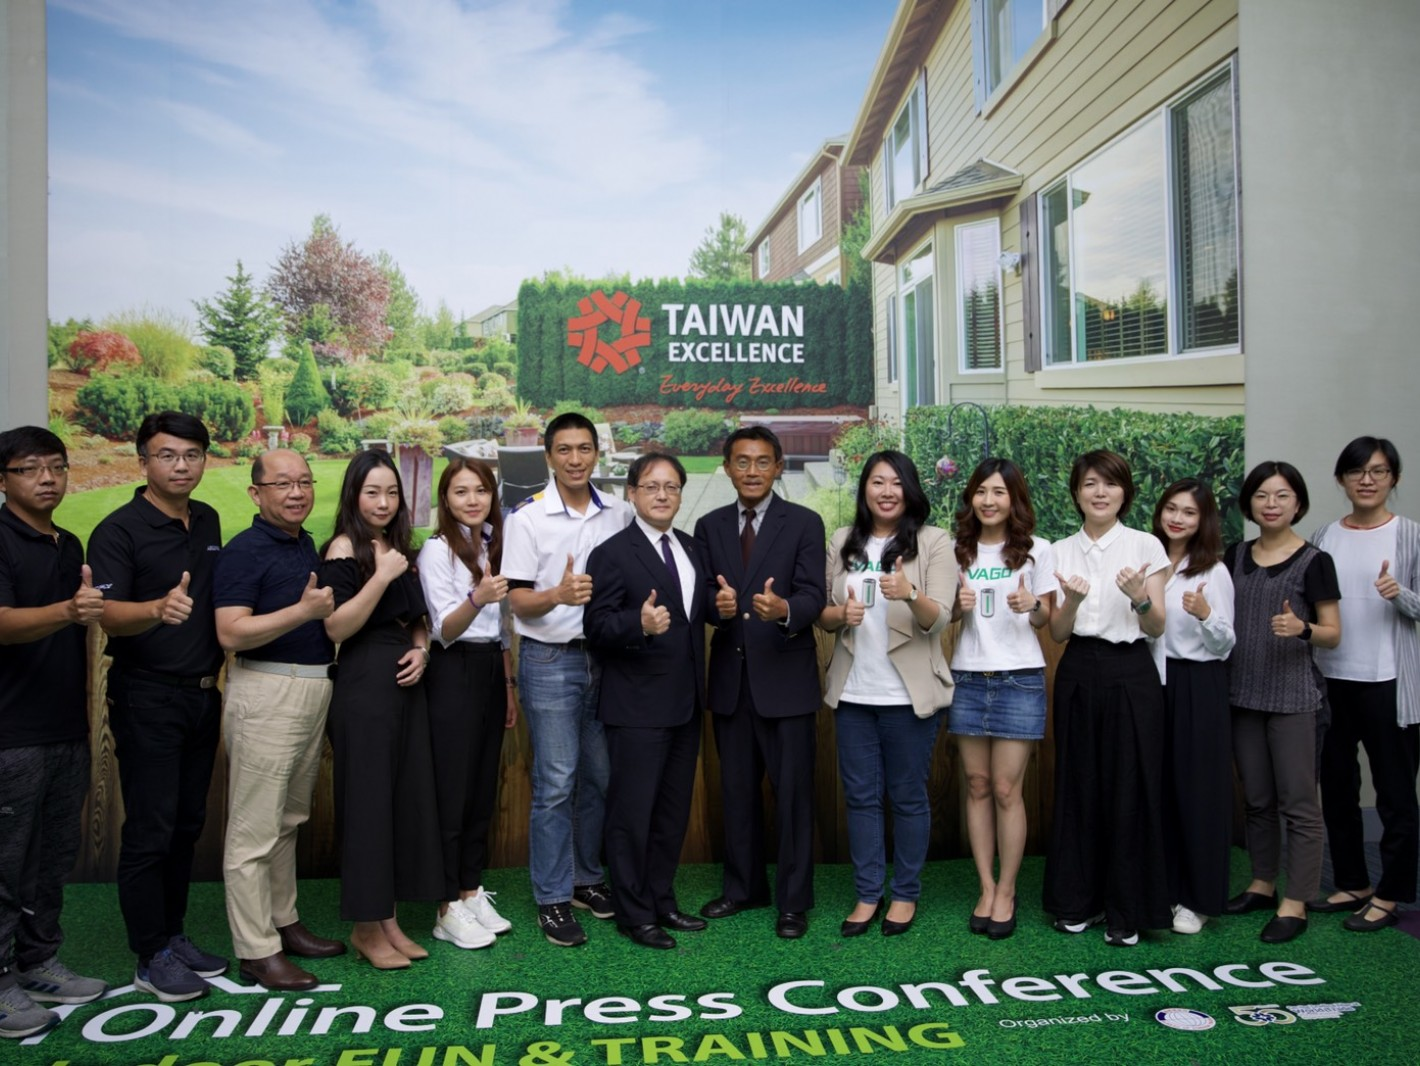 Deputy Director General of MOEA, Guann-Jyh Lee and Executive Vice President of TAITRA, Simon Wang take pictures with all the brands representatives